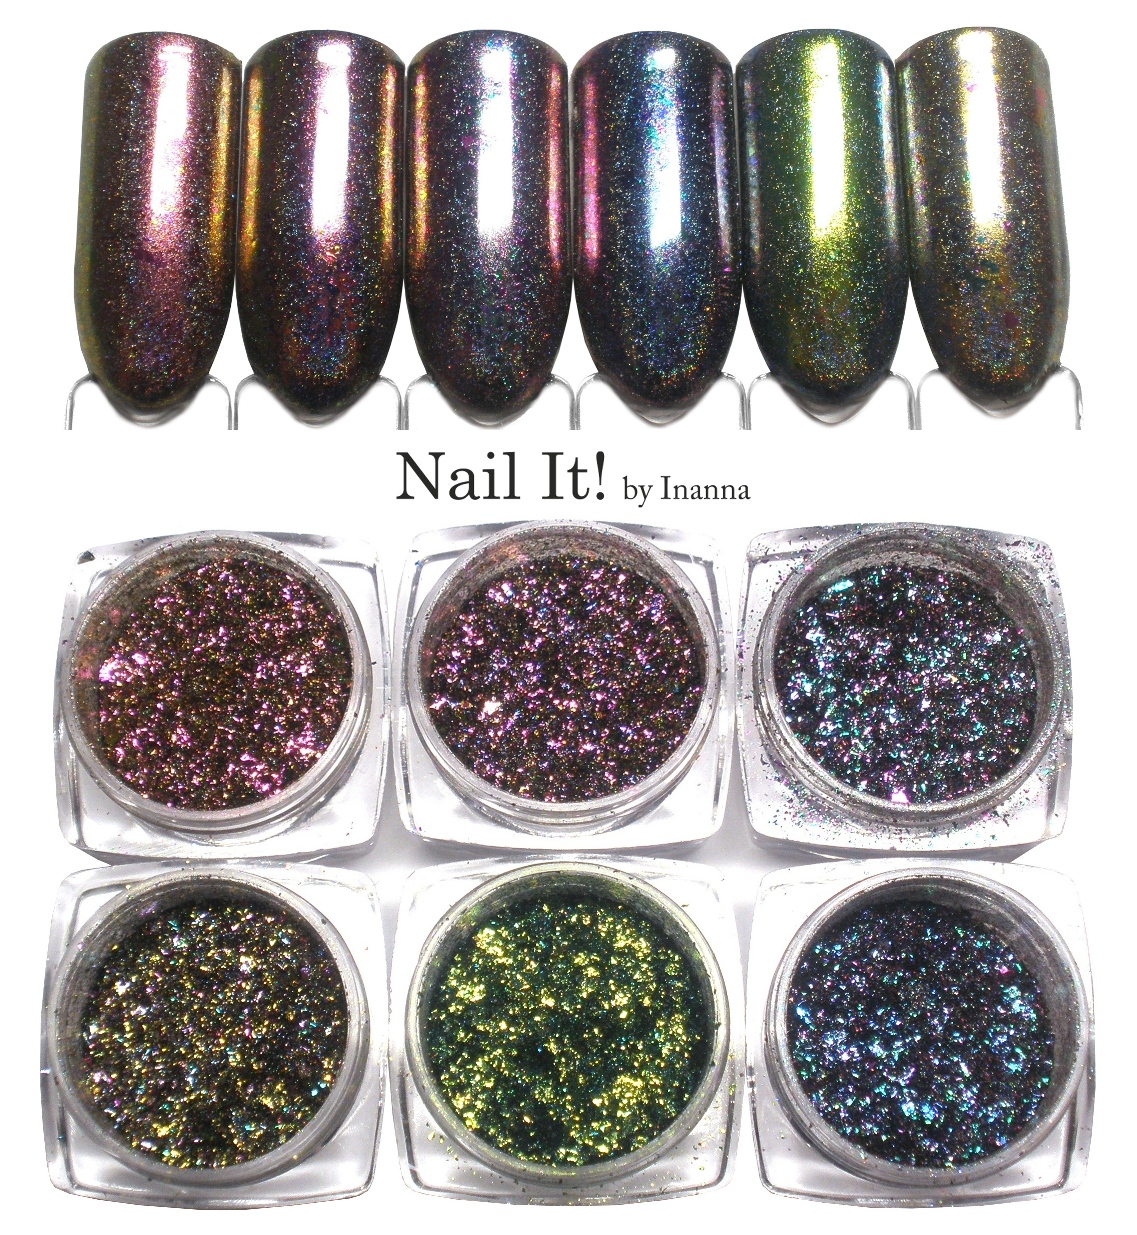 Holographic Chameleon Flakes from BeautyBigBang - swatches of all 6 powders!